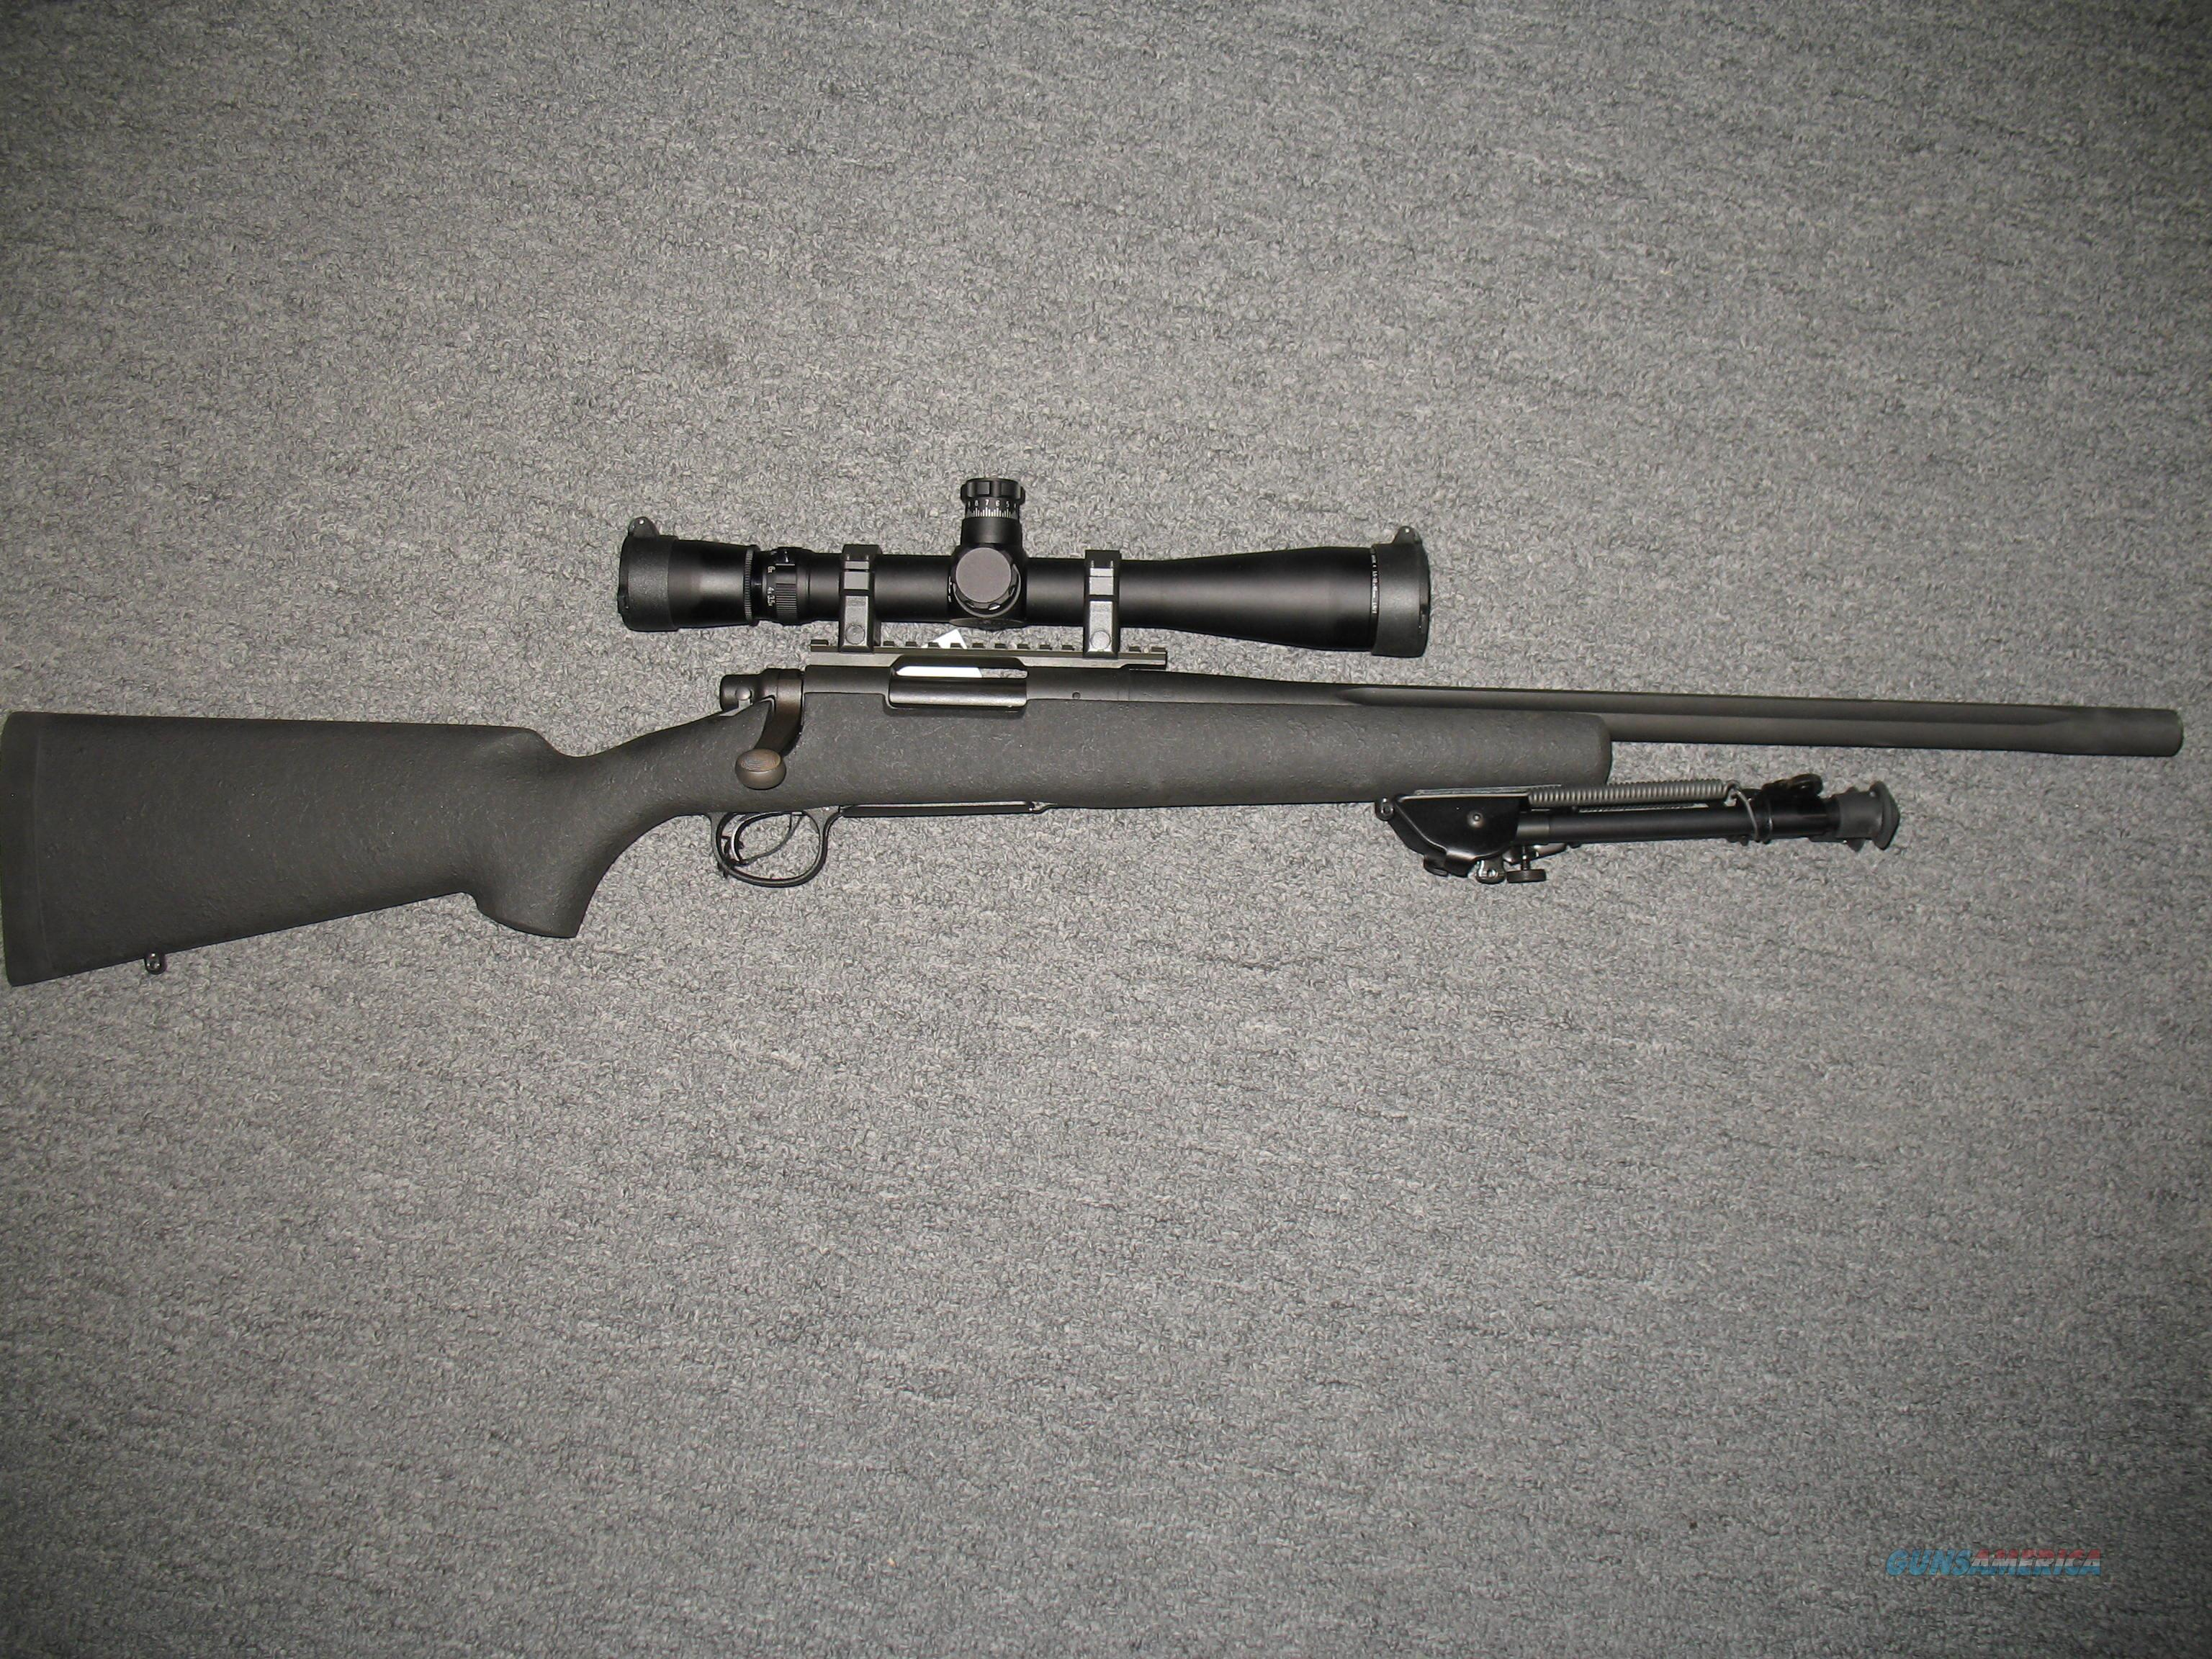 "700 LTR TSW 20"" bl 308win (025635)  Guns > Rifles > Remington Rifles - Modern > Model 700 > Tactical"